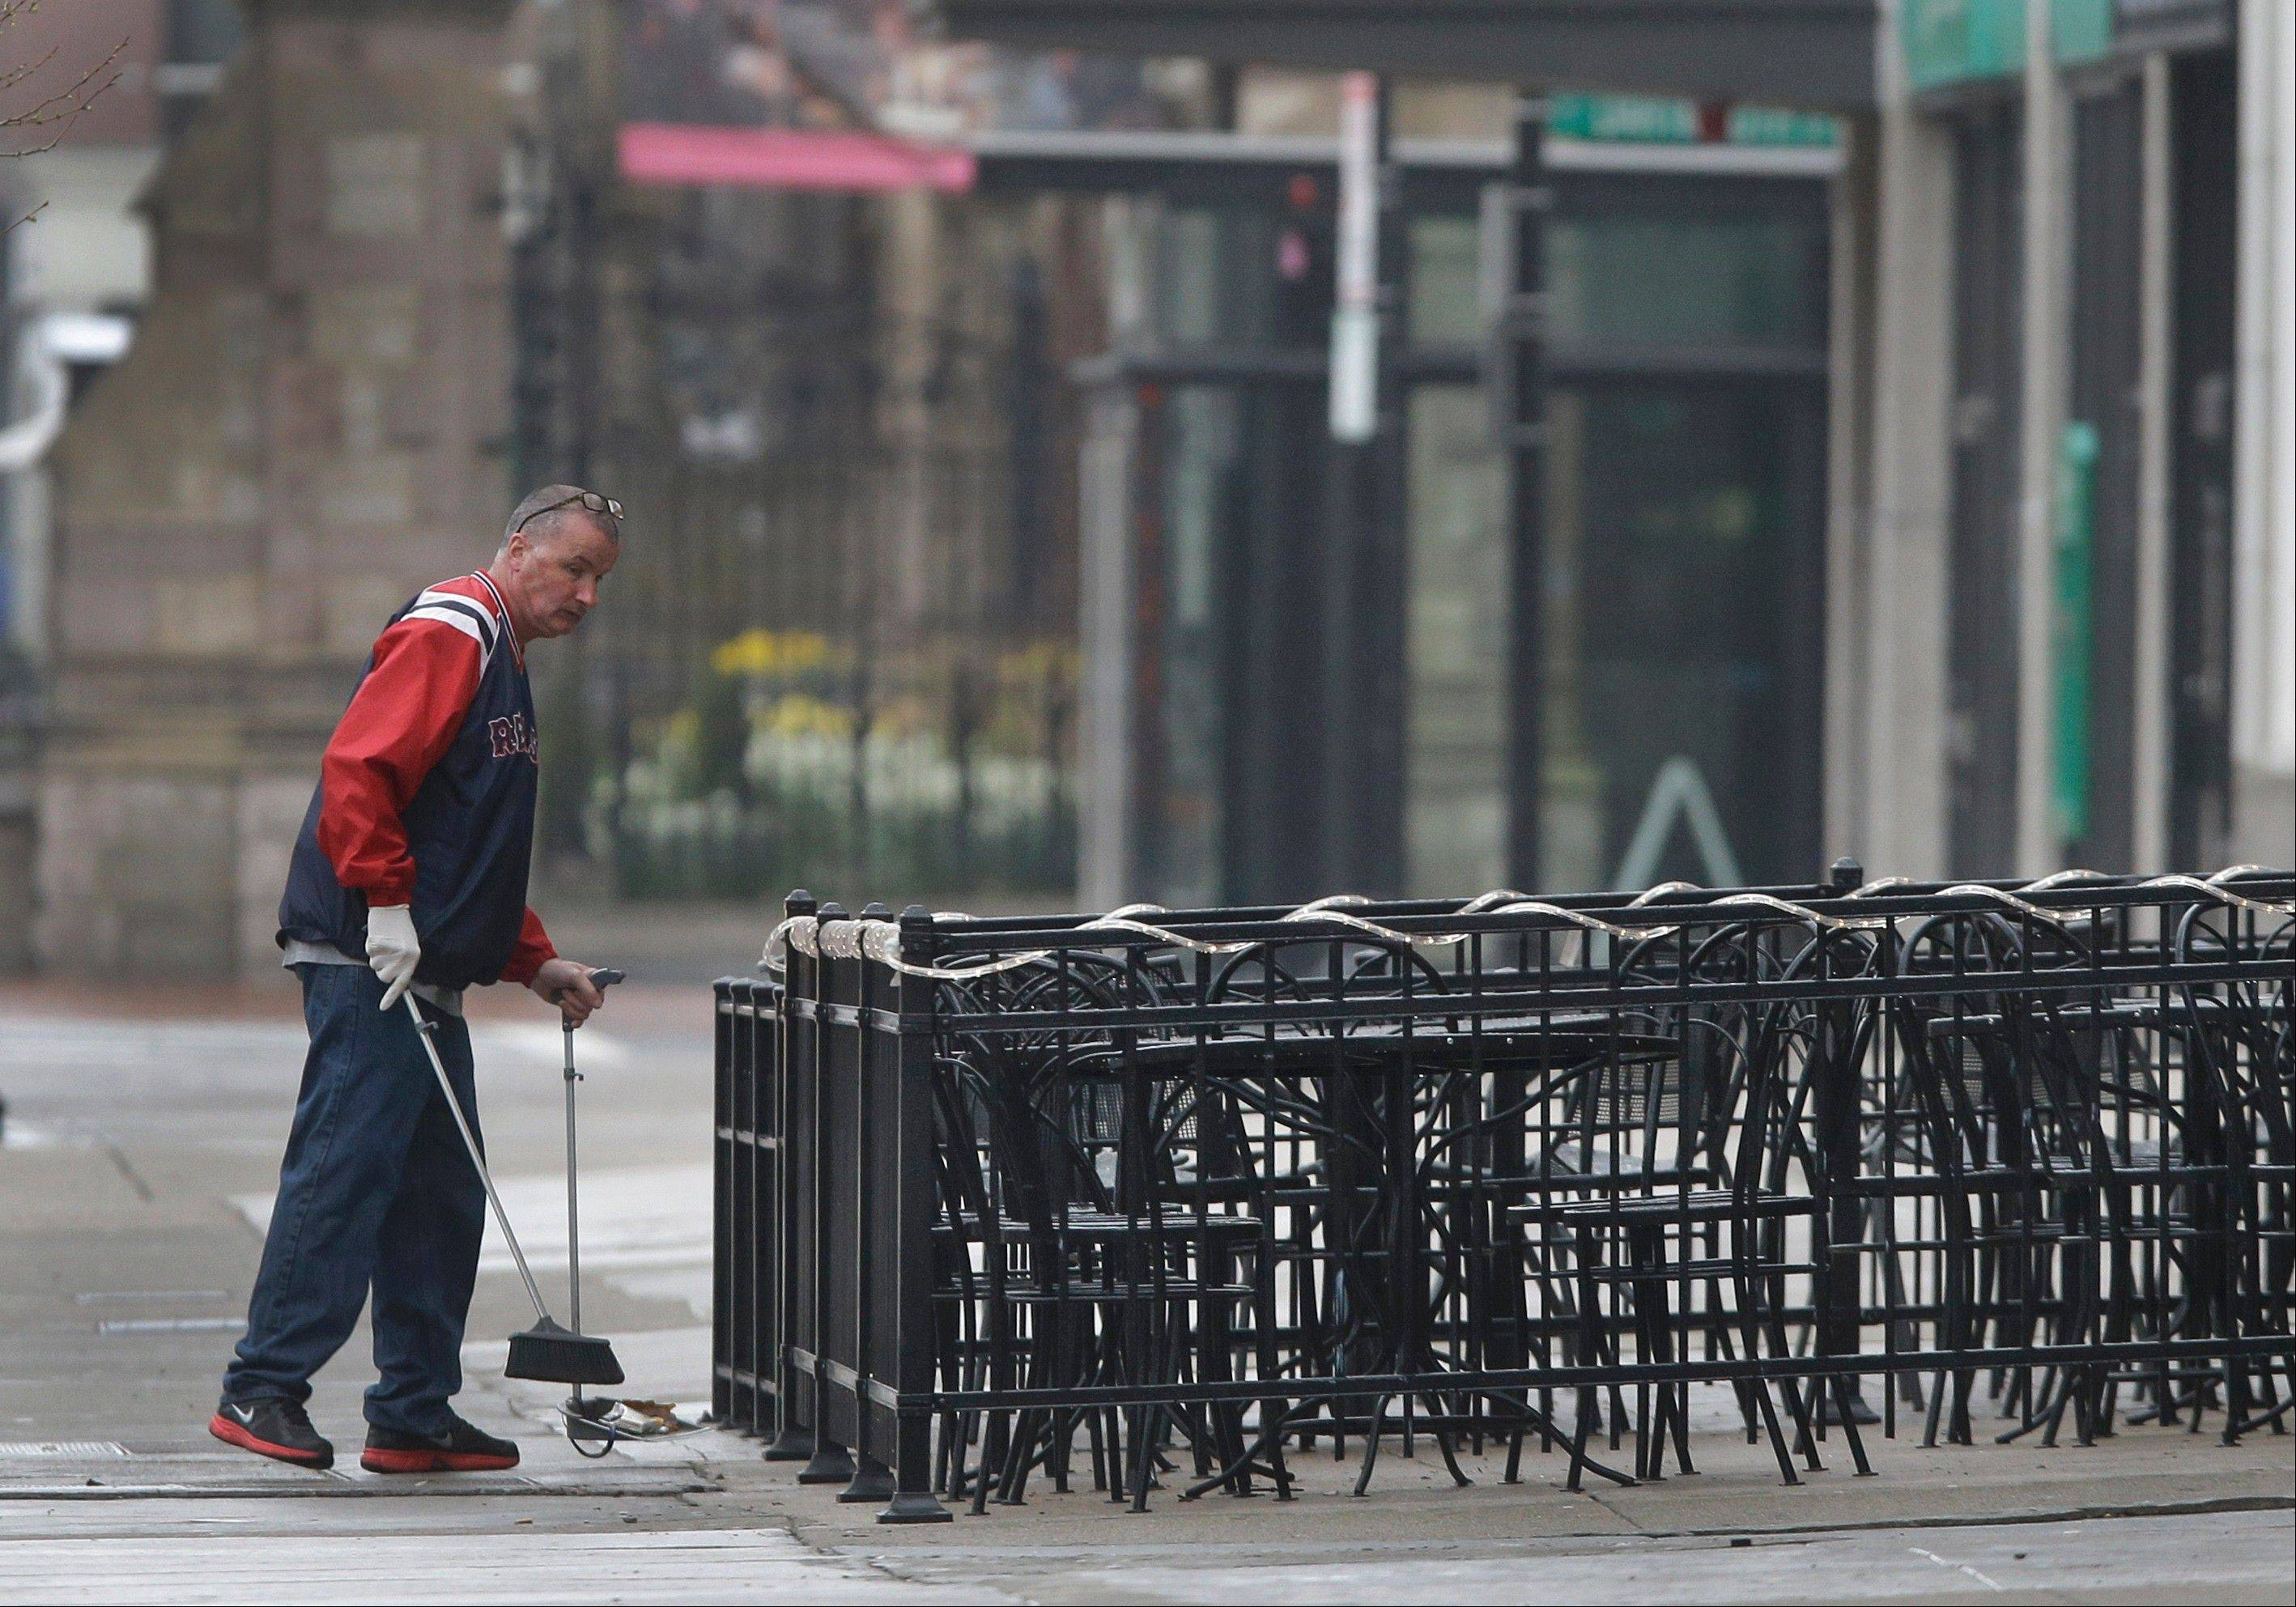 A man sweeps around the outdoor seating area at a business on Boylston Street in Boston Tuesday, April 23, 2013 about two blocks from the Boston Marathon finish line where two bombings killed three people and injured many. Boylston Street businesses near the finish area remain closed to the public, but business owners are slowly being allowed to prepare to reopen.